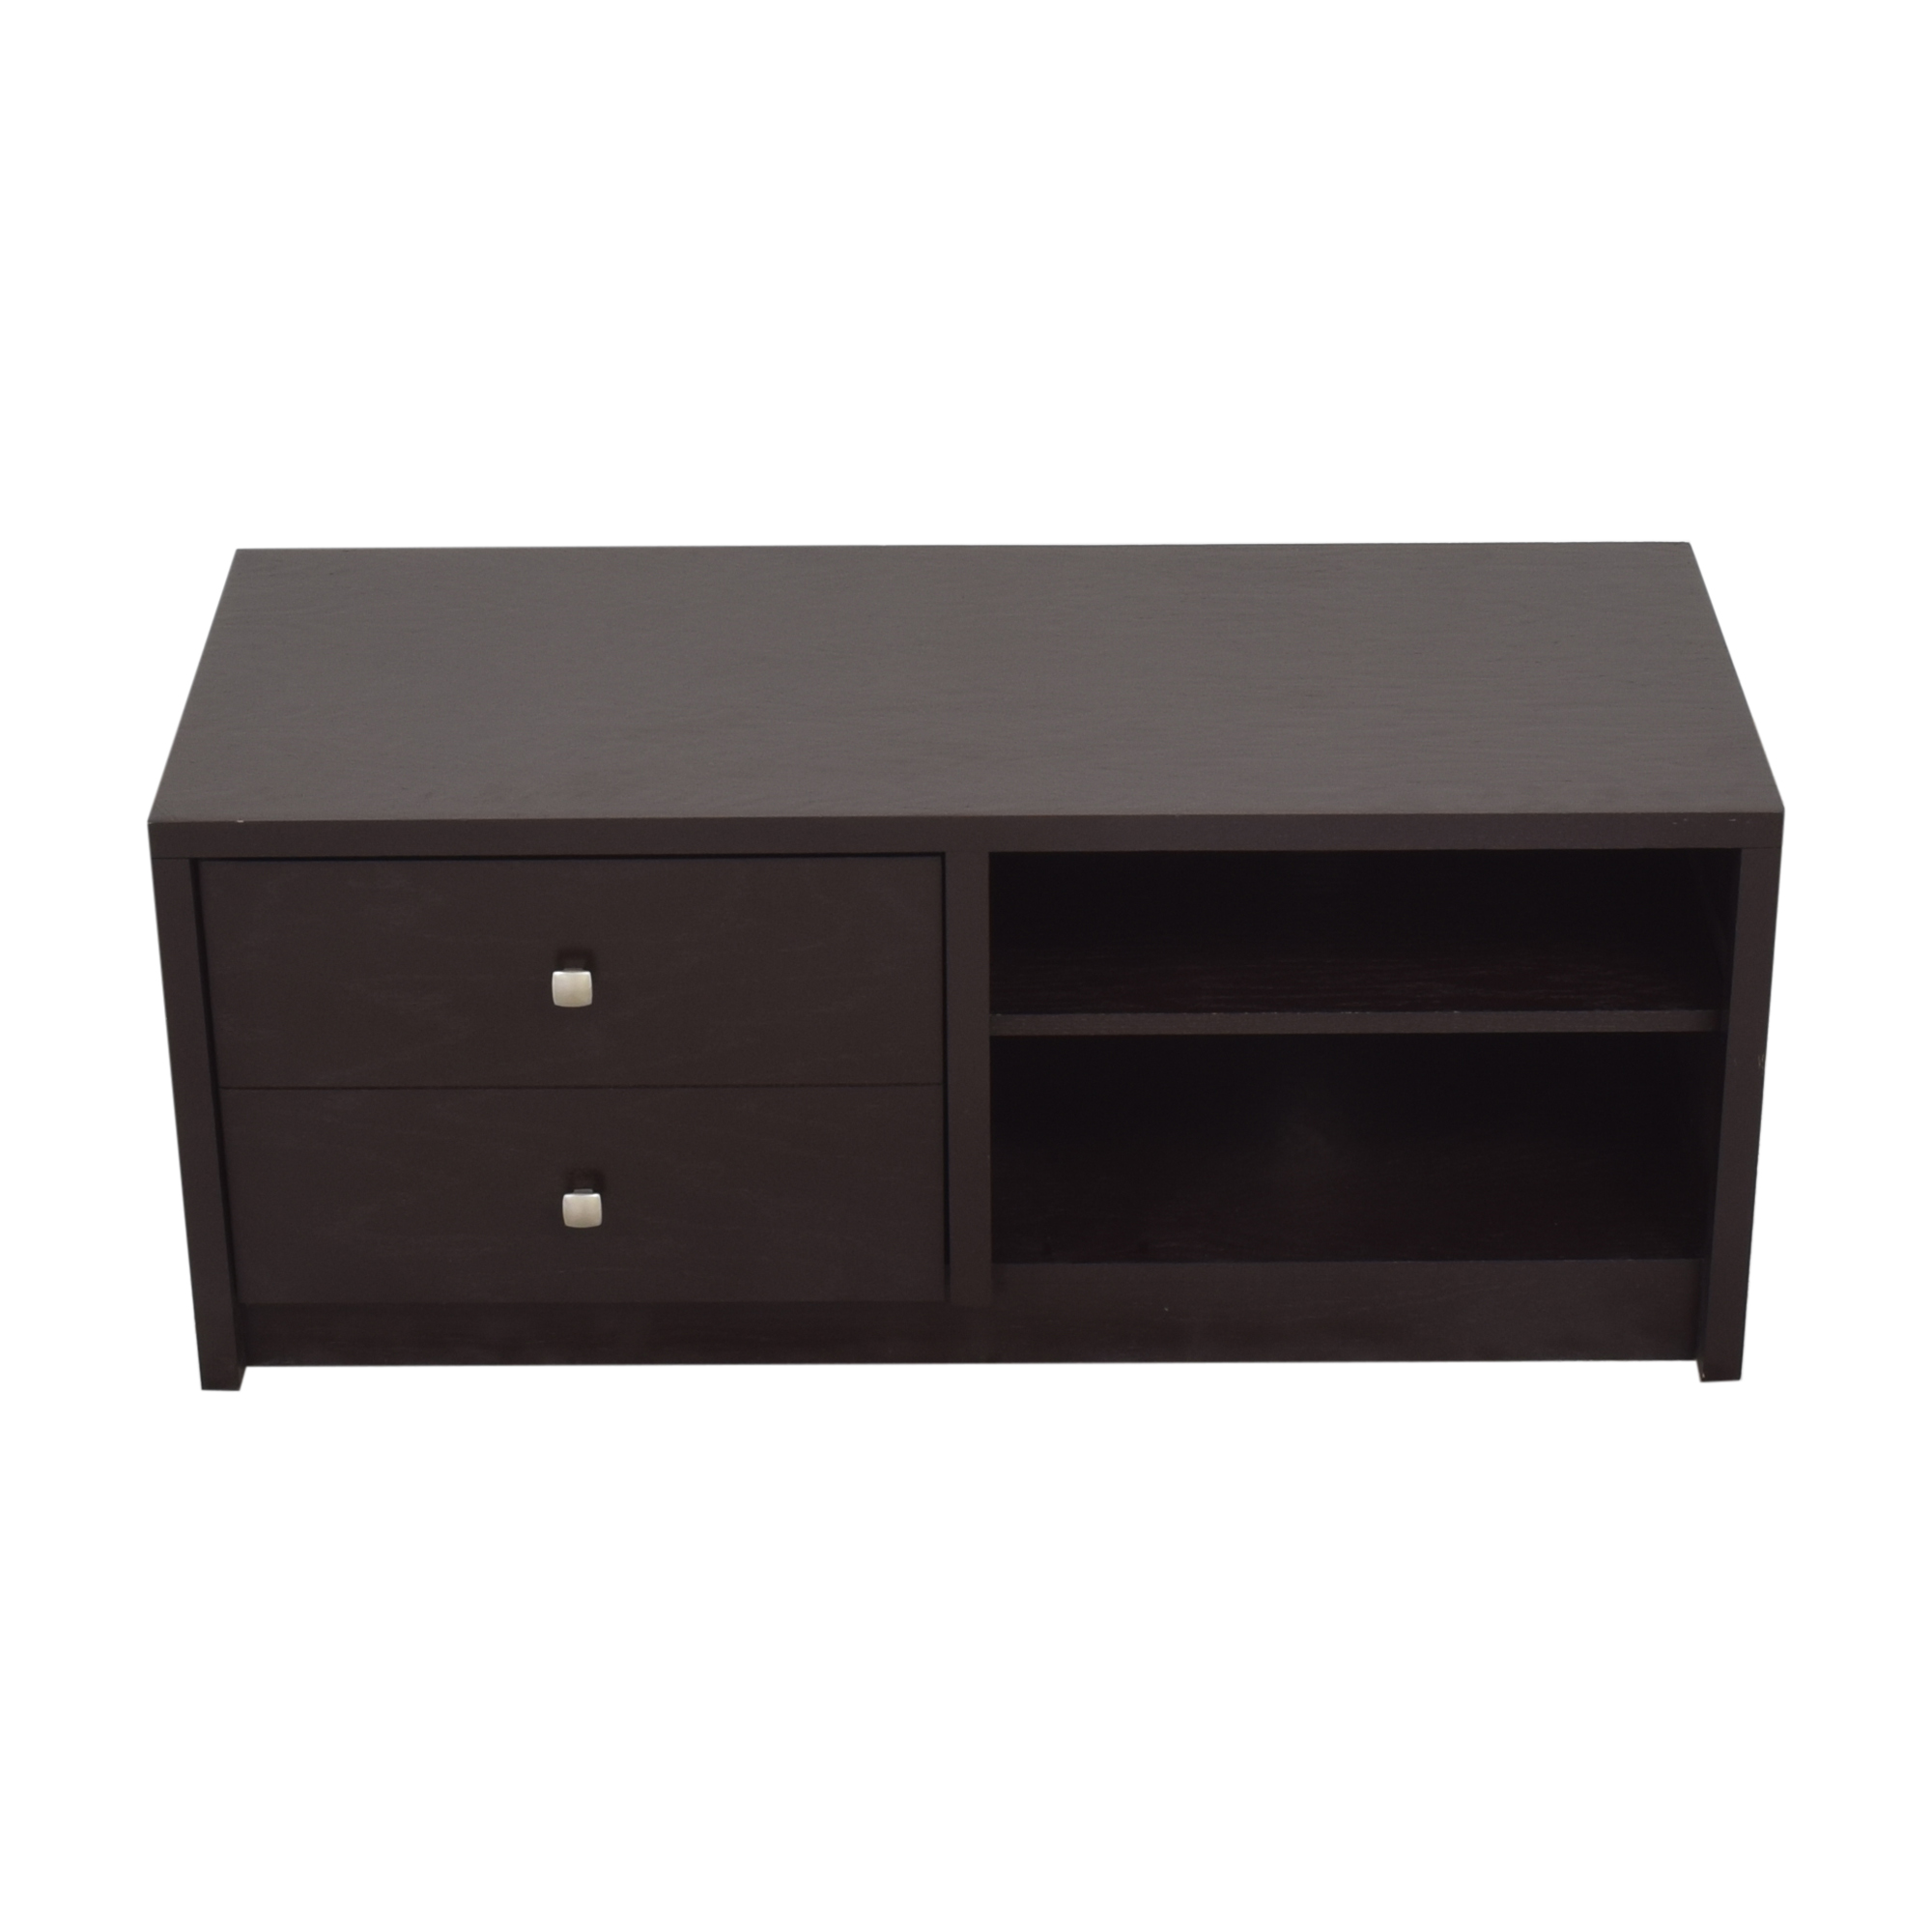 Pottery Barn Pottery Barn Entertainment Console coupon